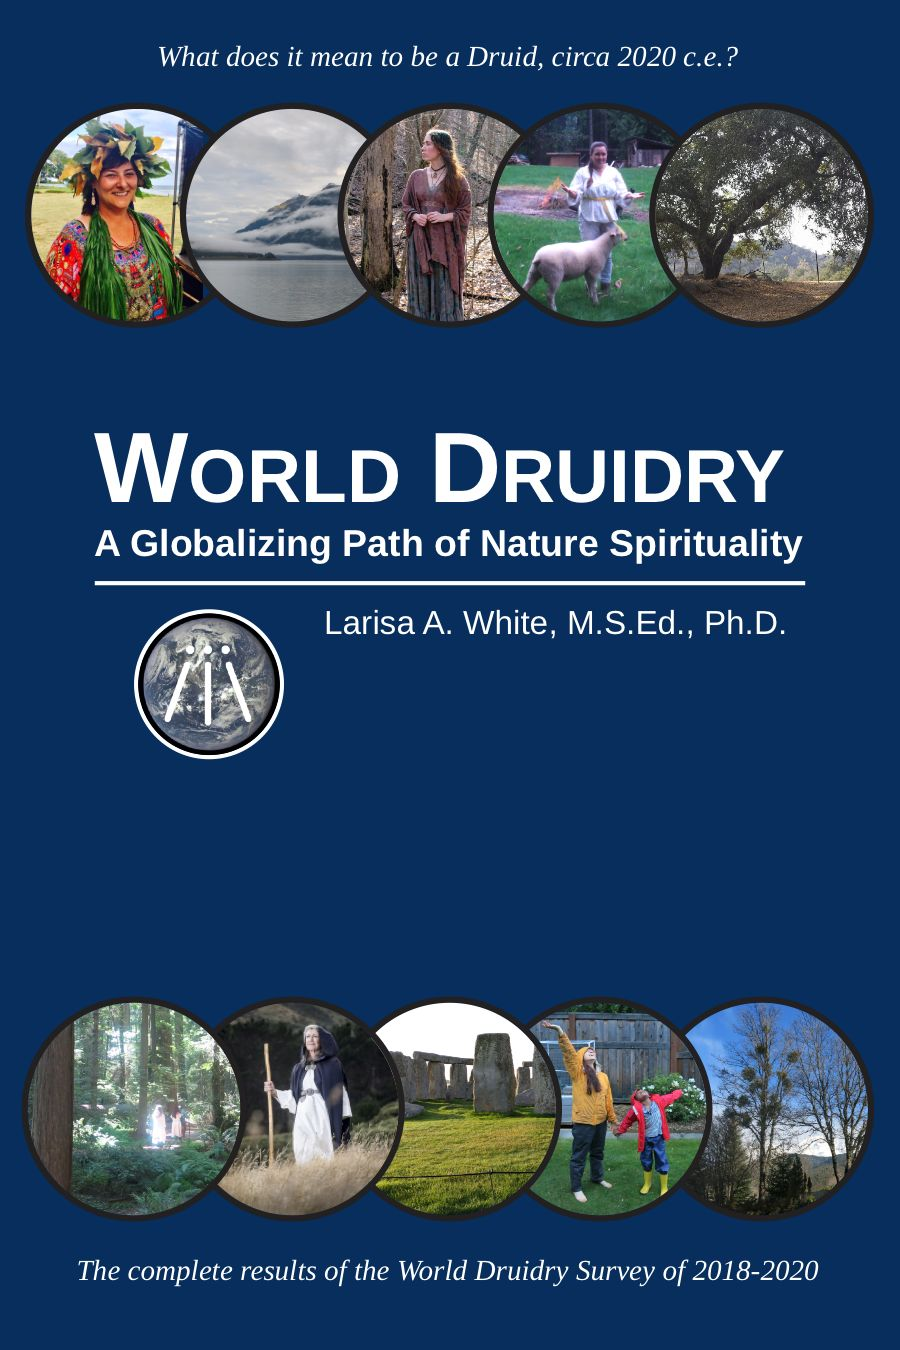 World Druidry book cover